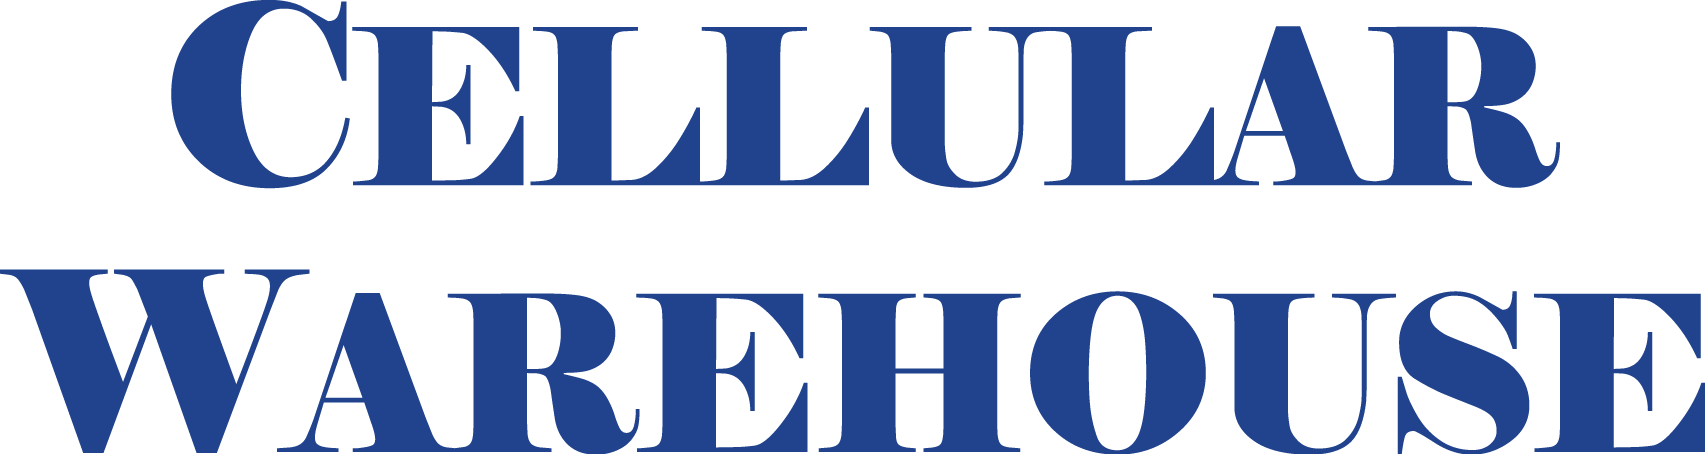 Cellular Warehouse logo